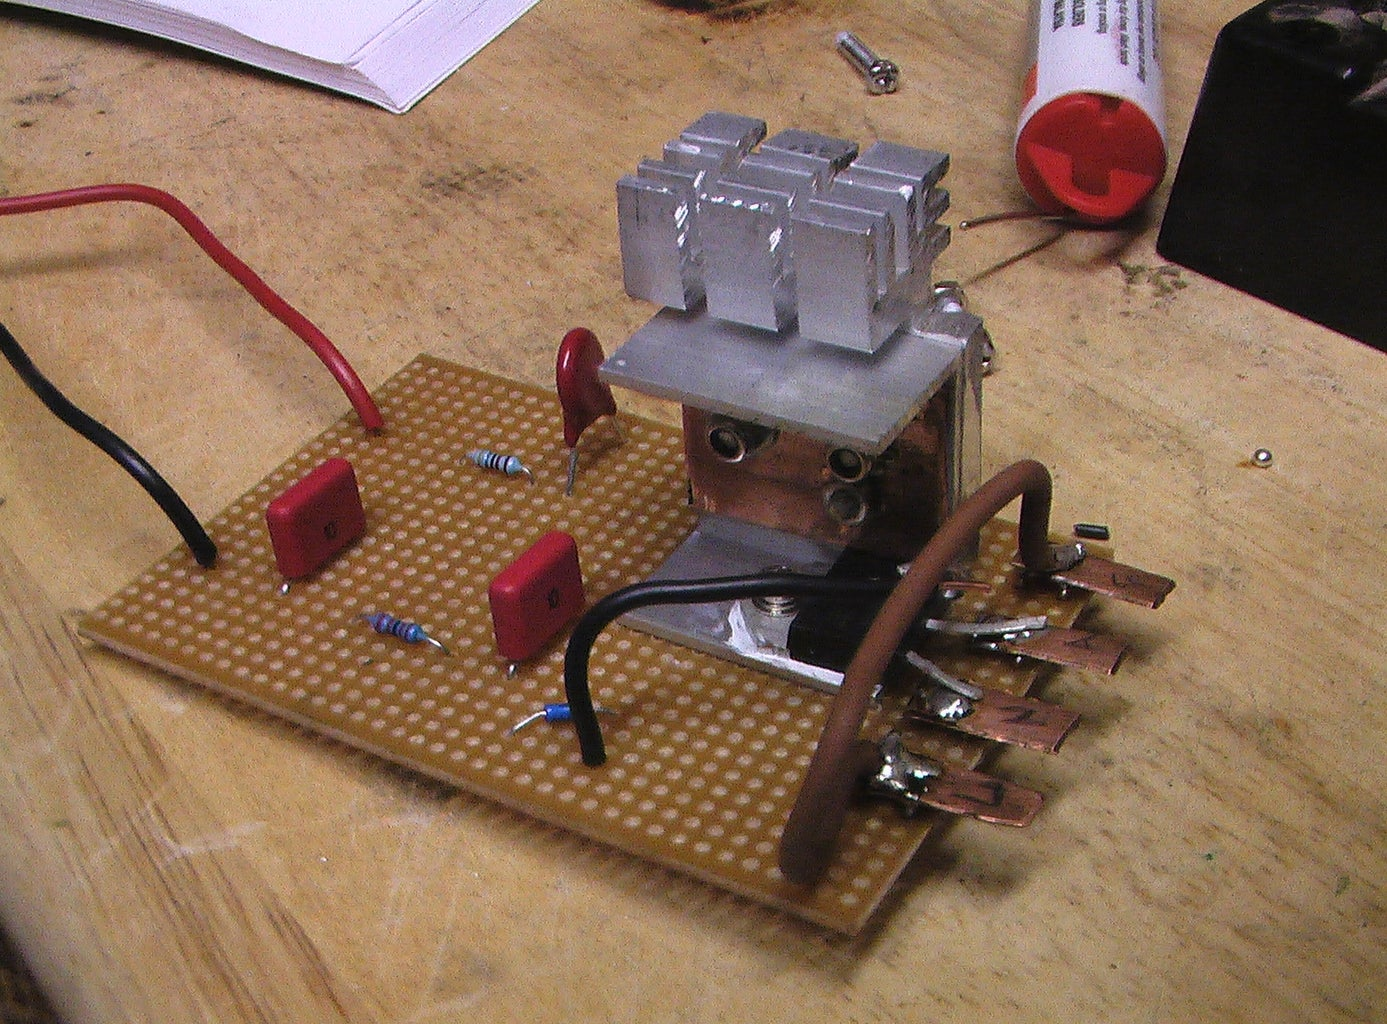 Speed Control (part 2 - Making a Simple Circuit)